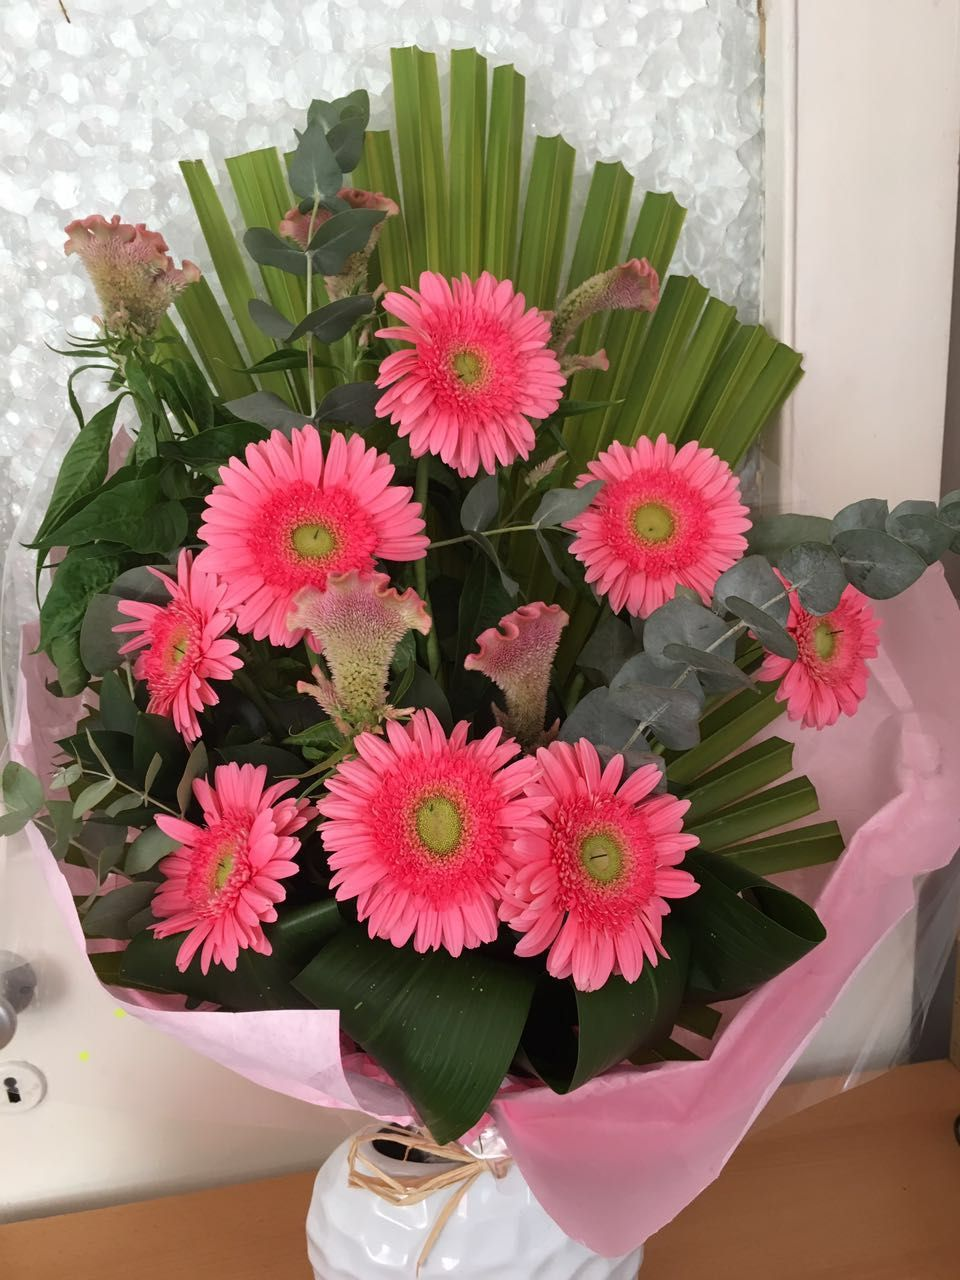 Professional floral design course of Svetlana Lunin (beginners)